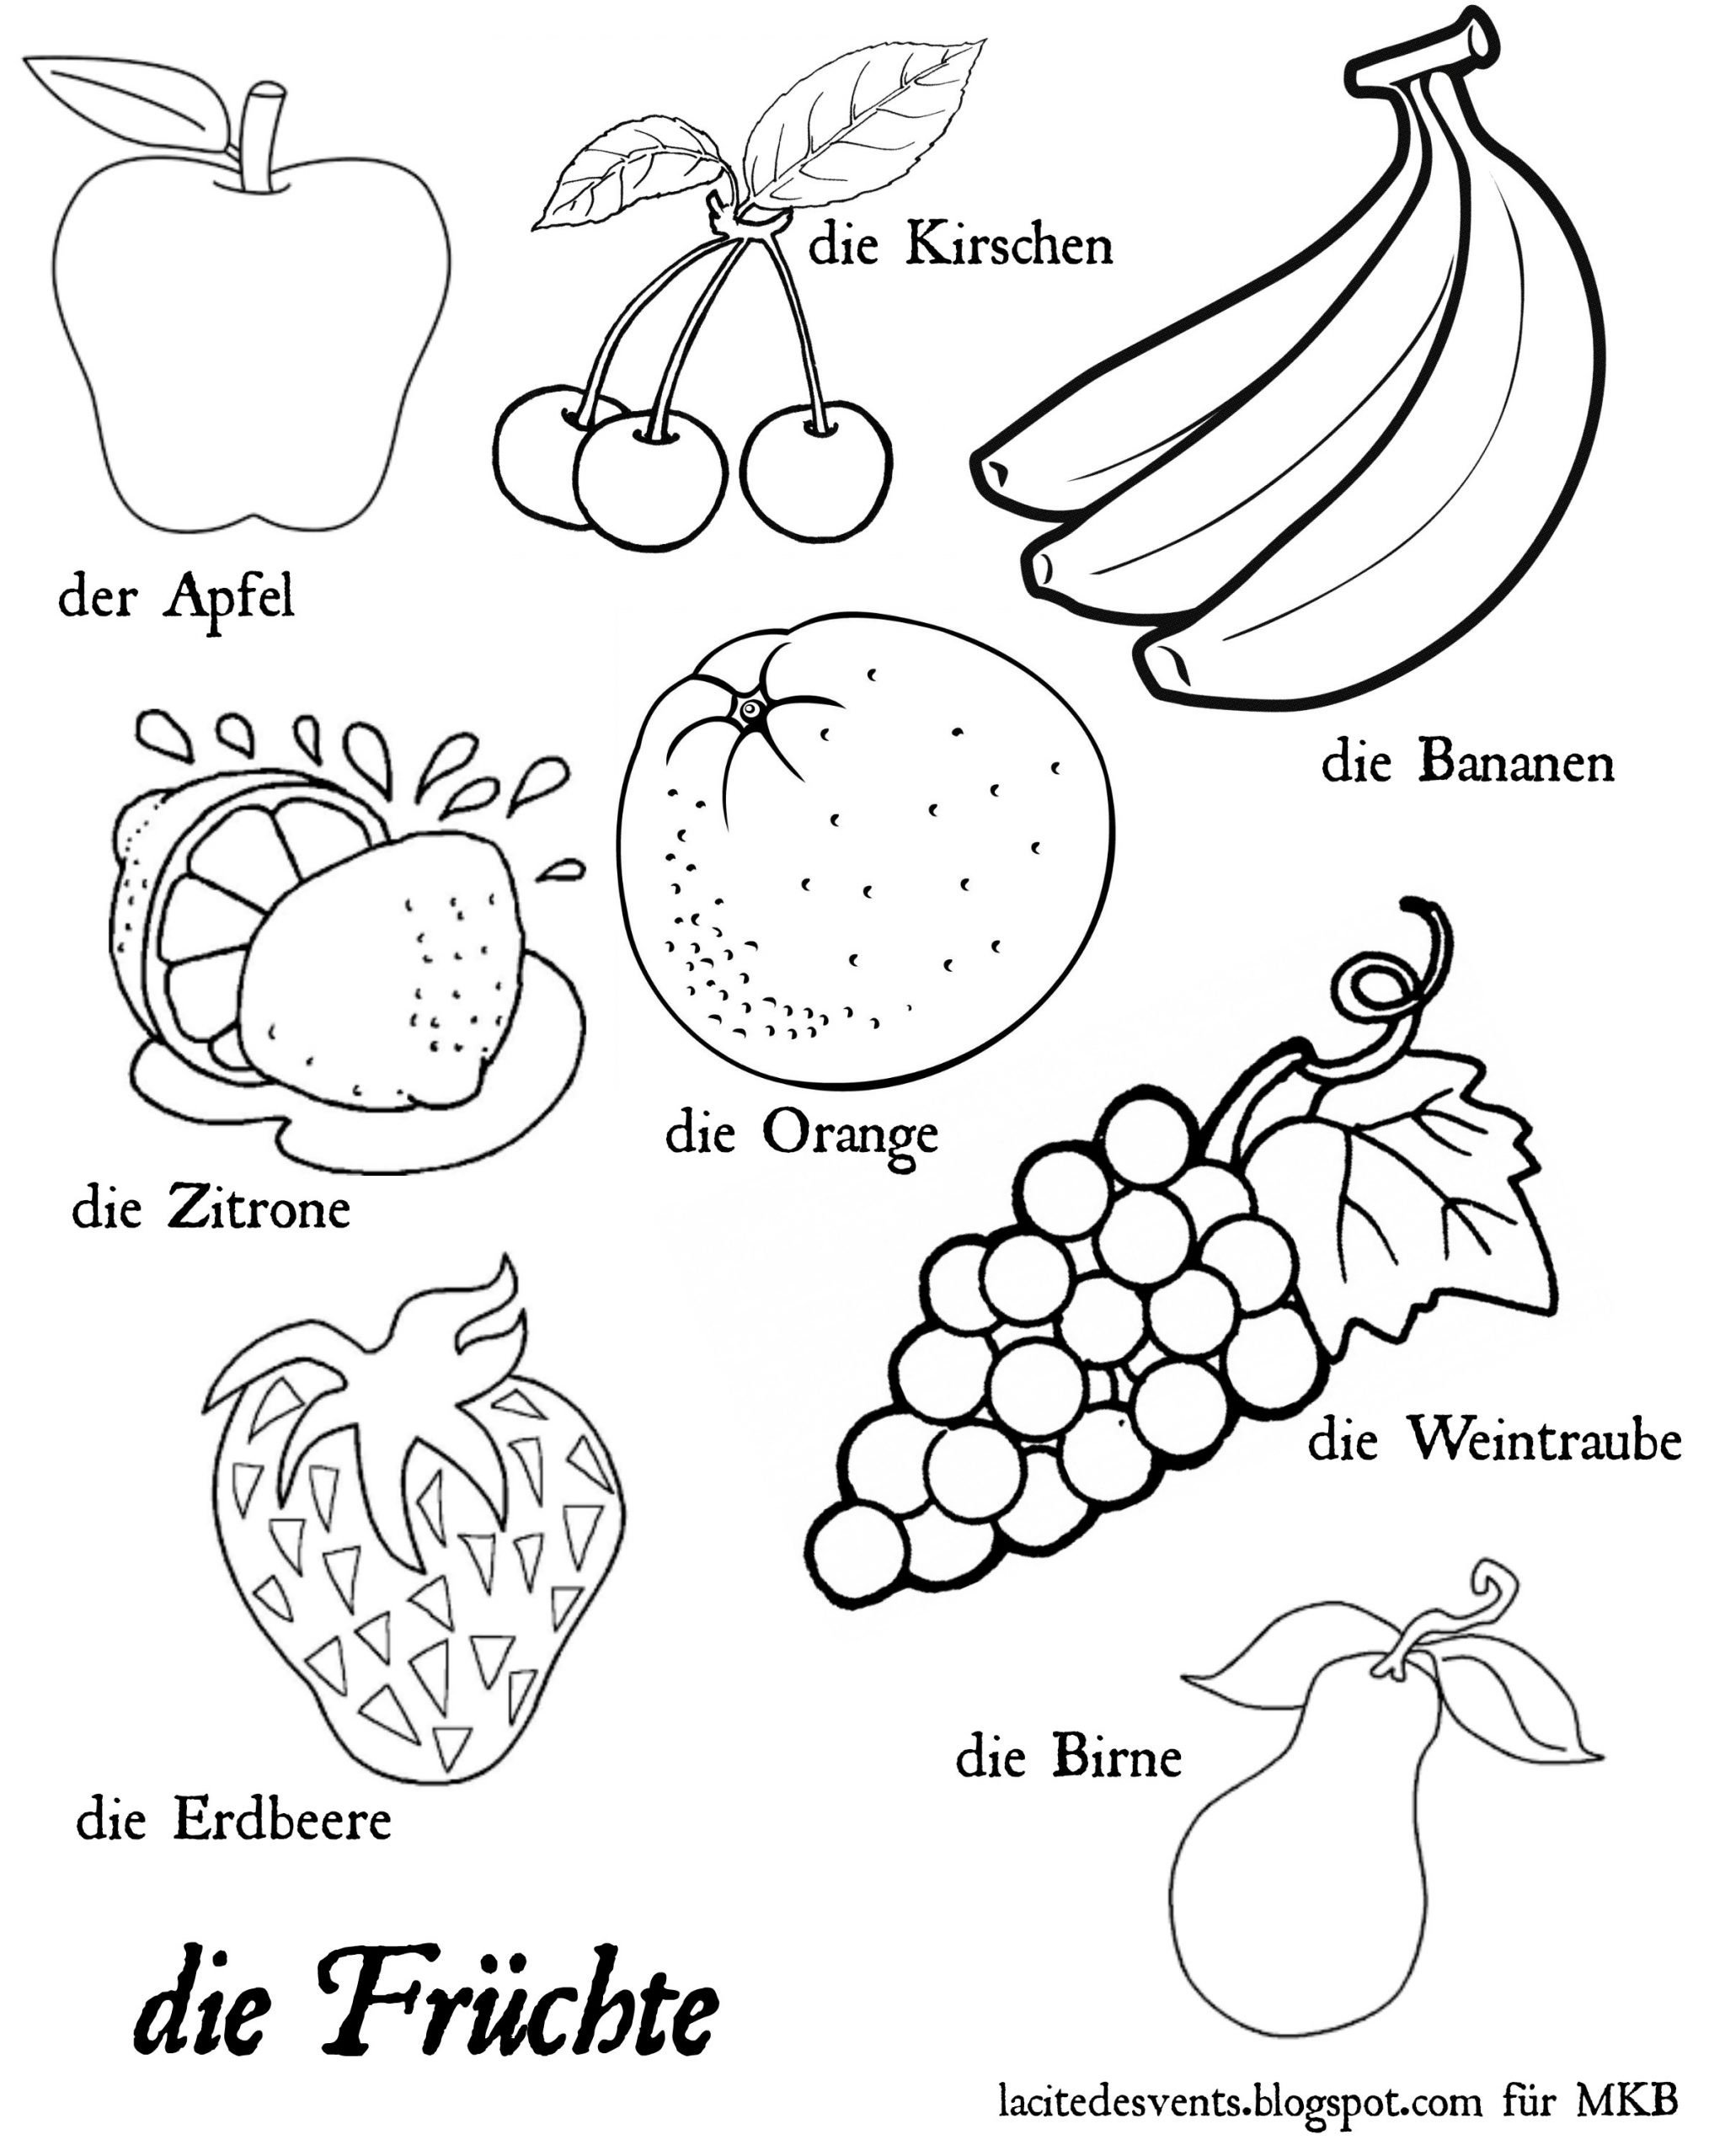 Preschool Fruits and Vegetables Worksheets Coloring Books and Ve Ables Printable Clip Art Pics